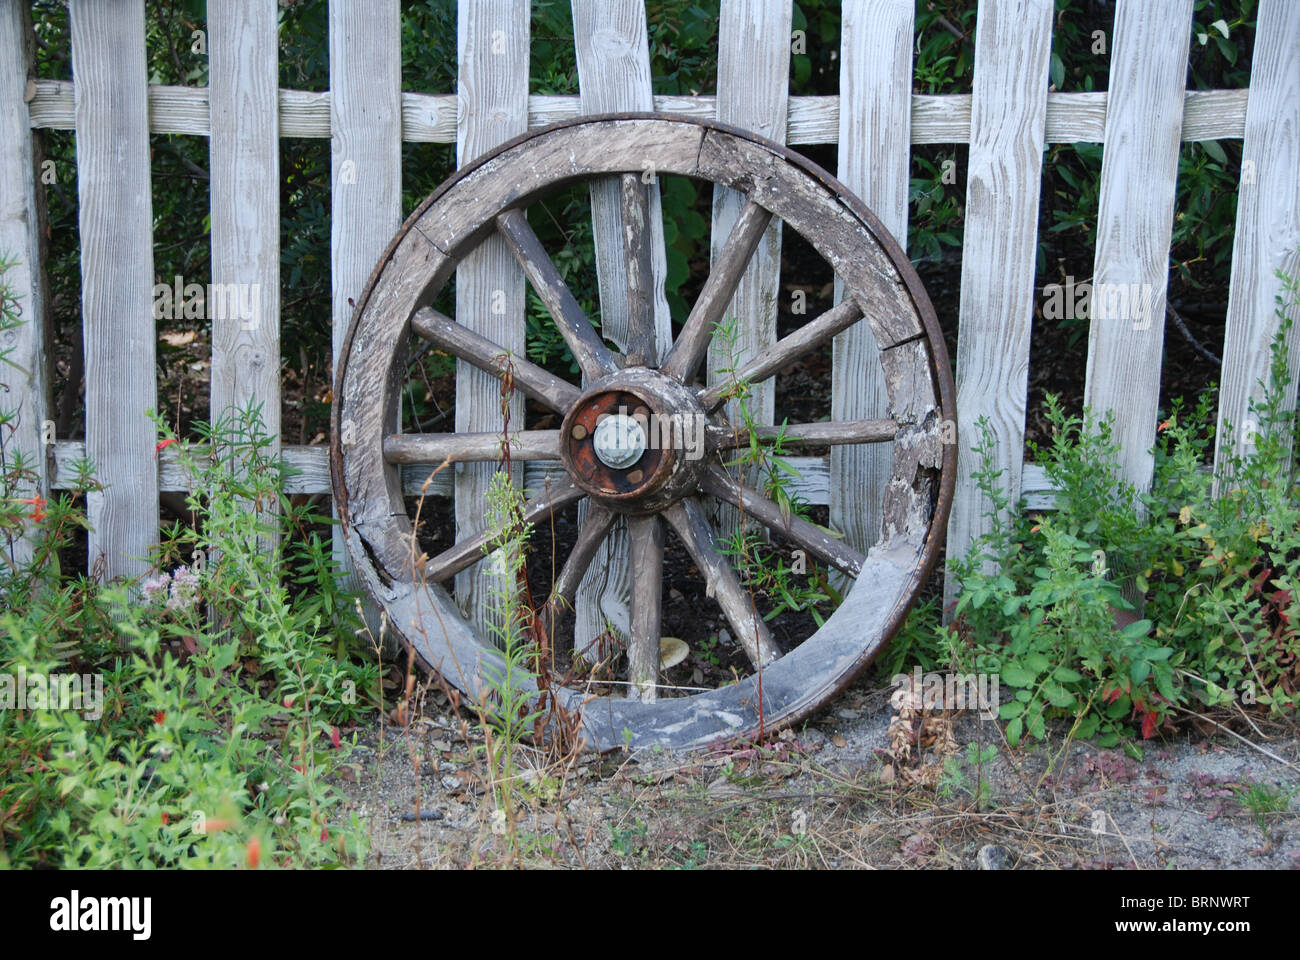 An old Waggon Wheel retired , where are its 3 companions , the other wheels , long gone .. - Stock Image